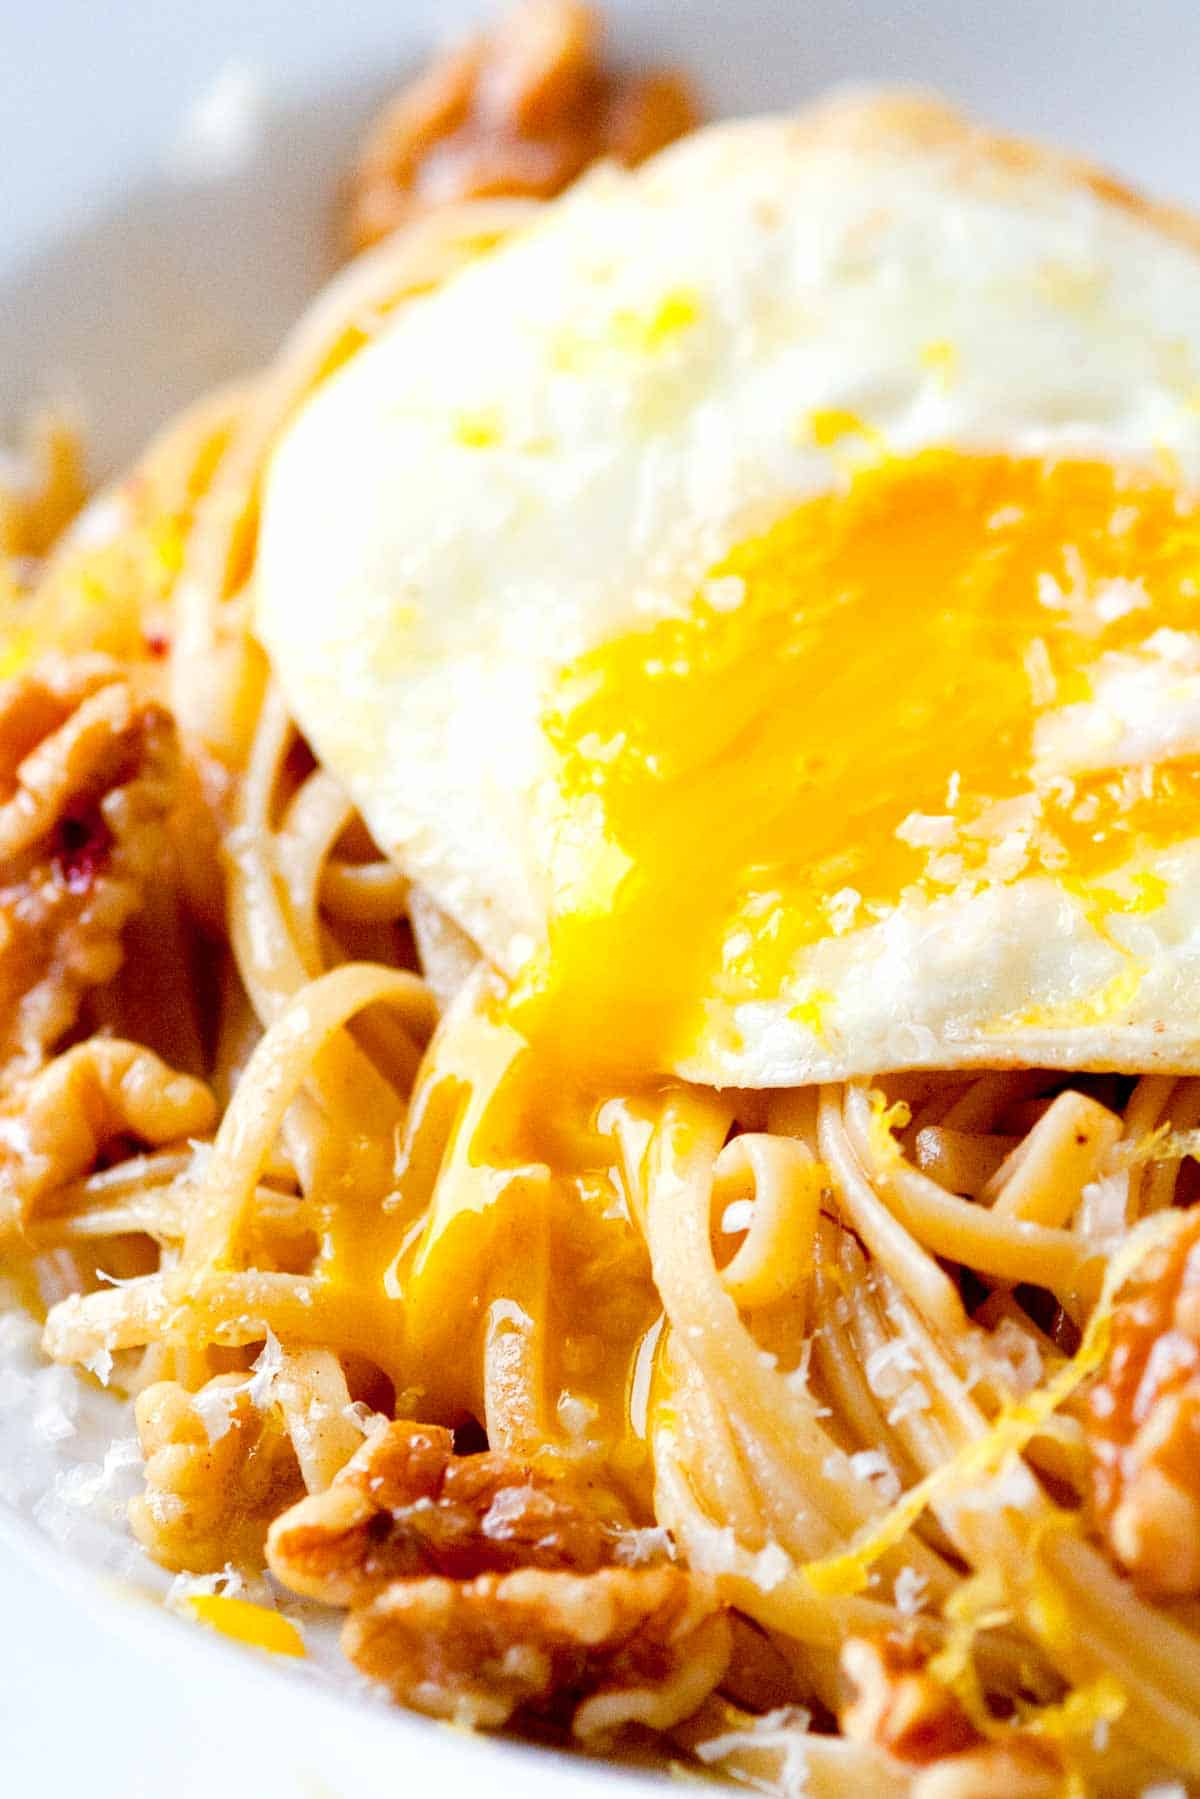 How to Make Pasta with Brown Butter, Walnuts and a Fried Egg